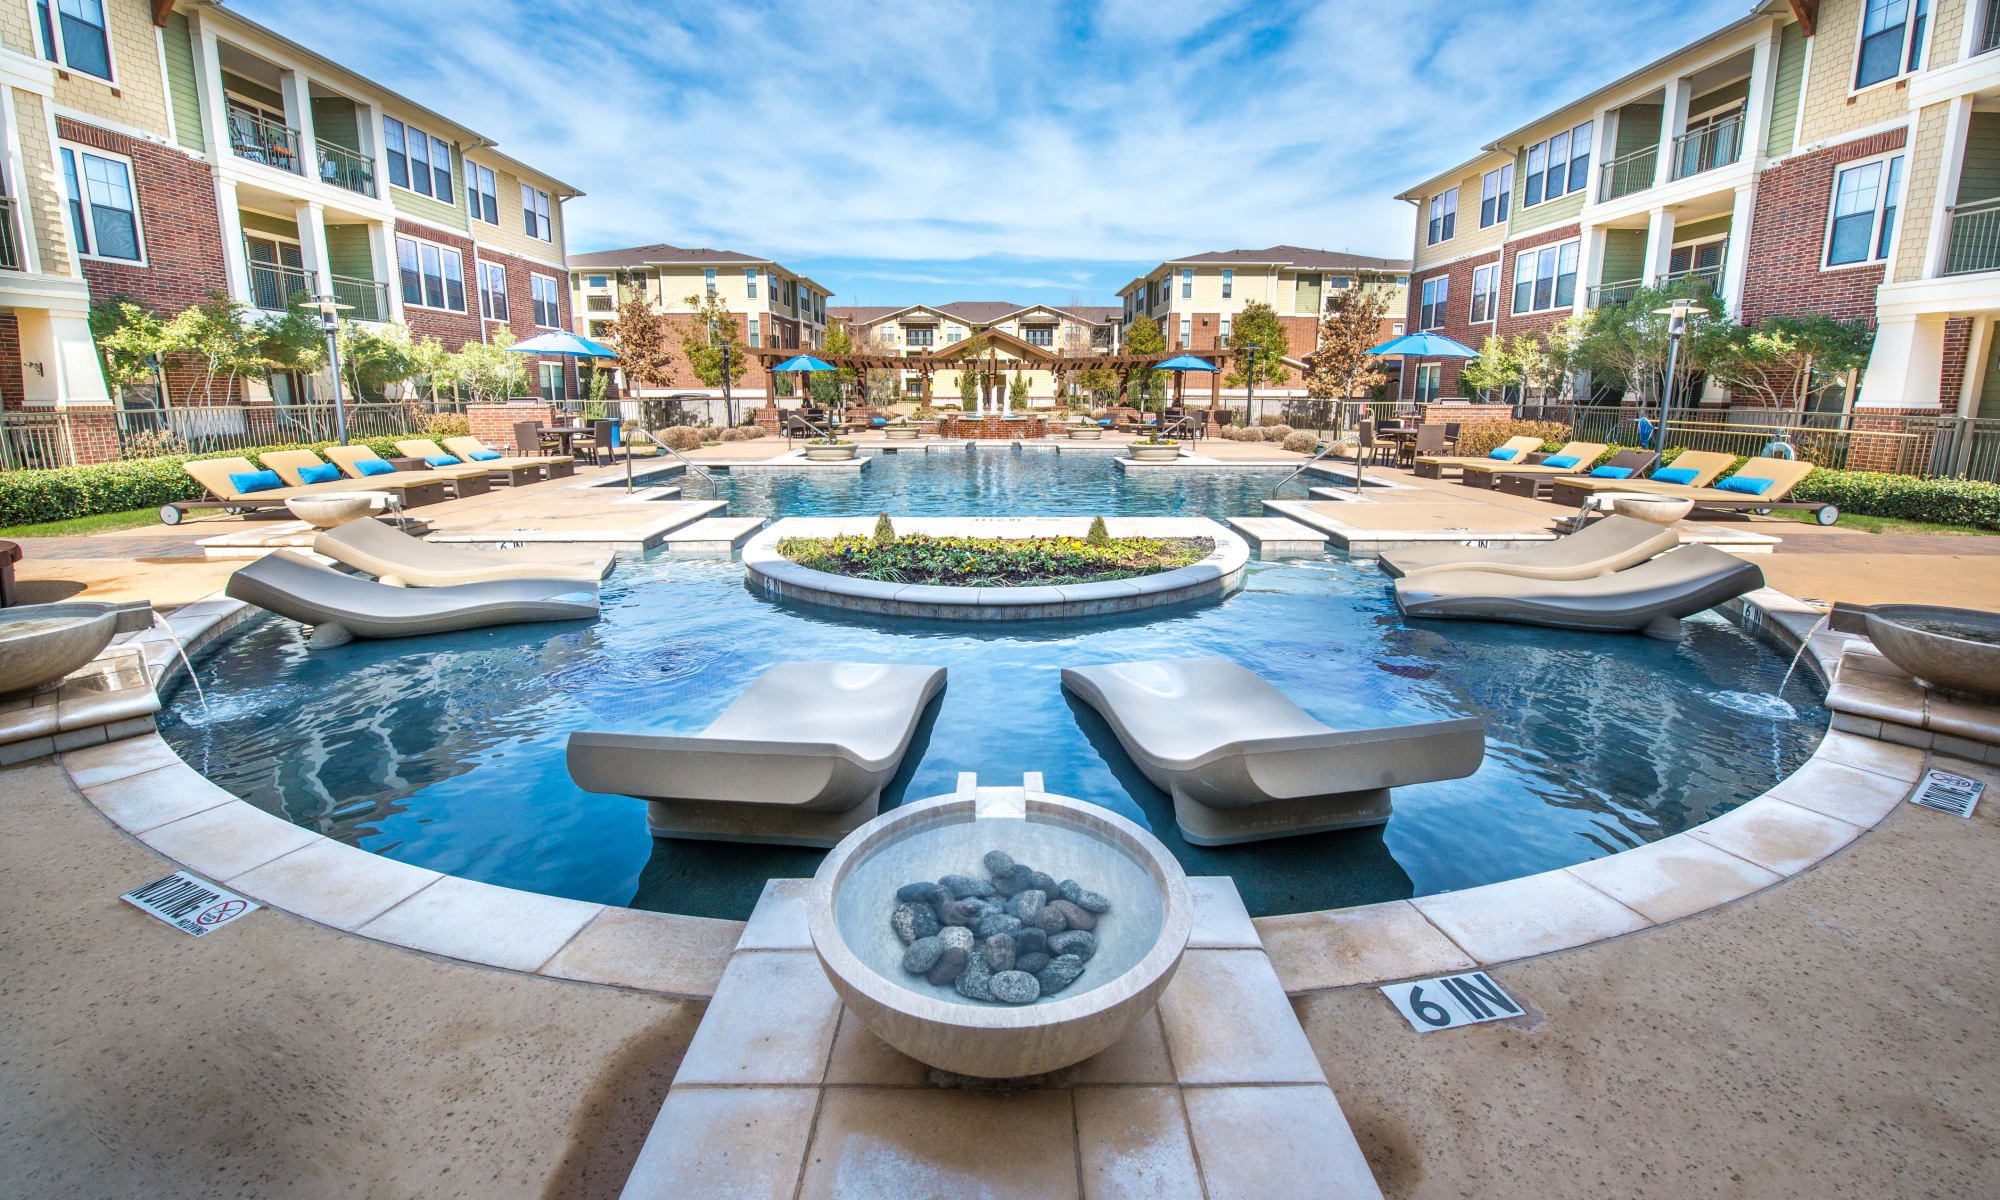 Luxury apartments in Grapevine, TX